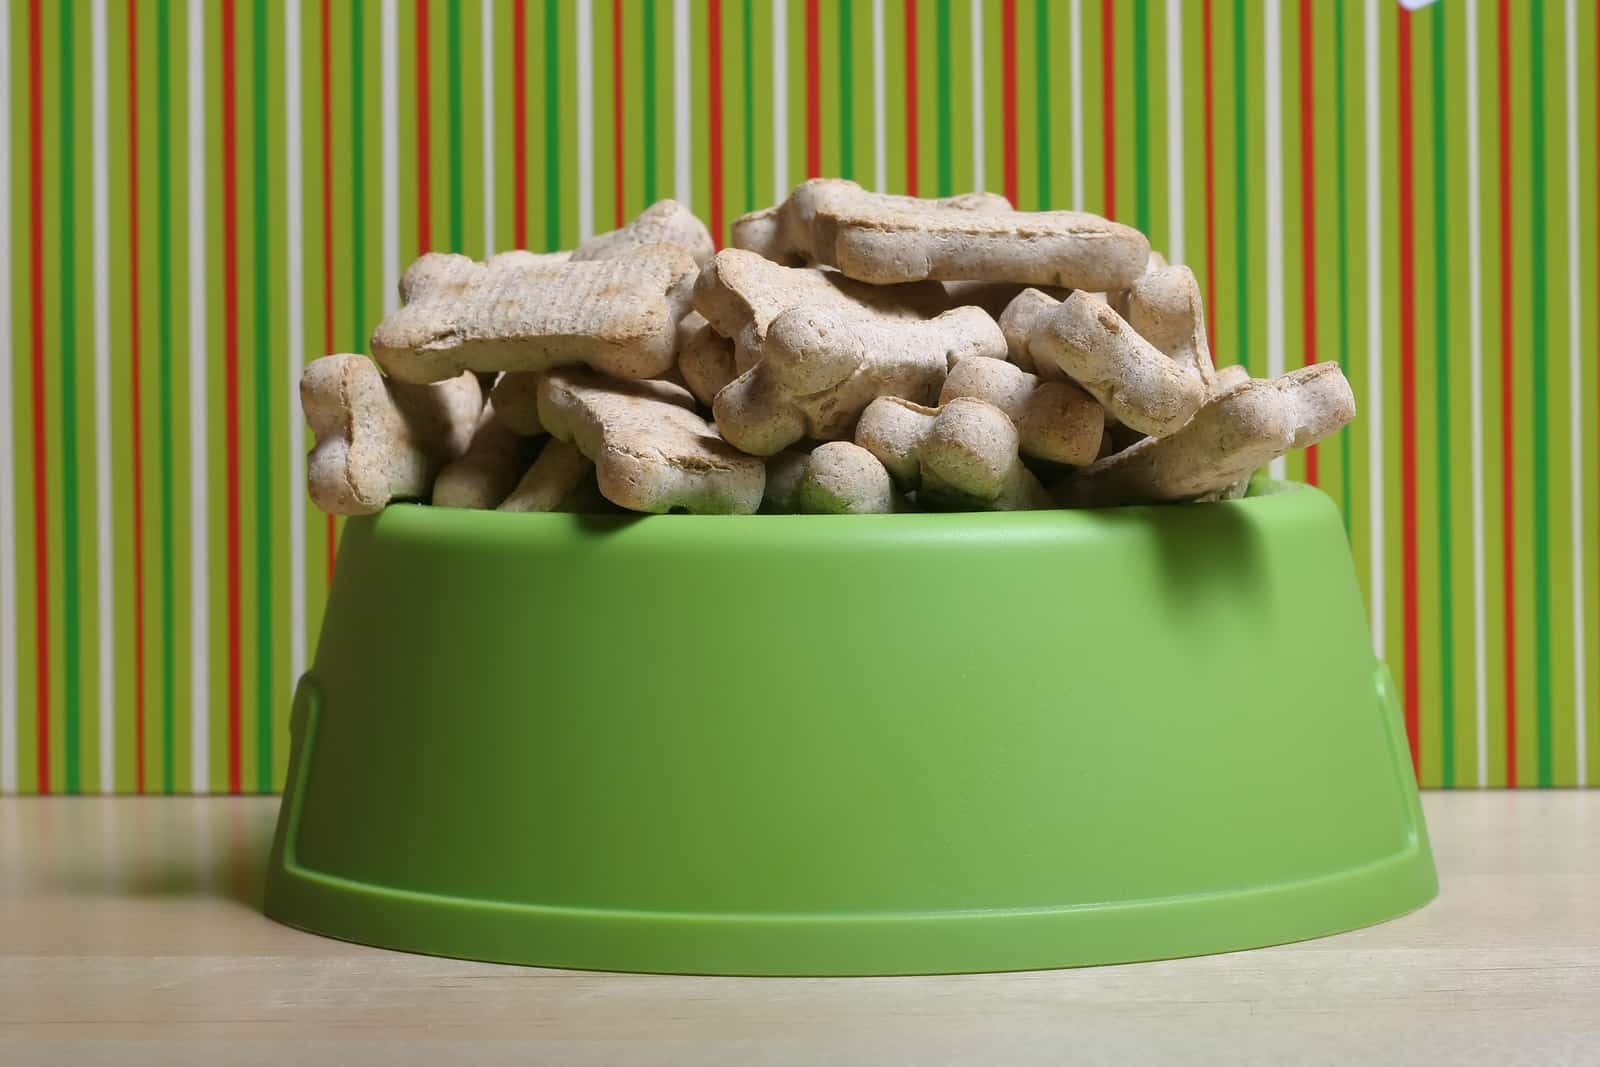 dog treats over-flowing in green dog bowl